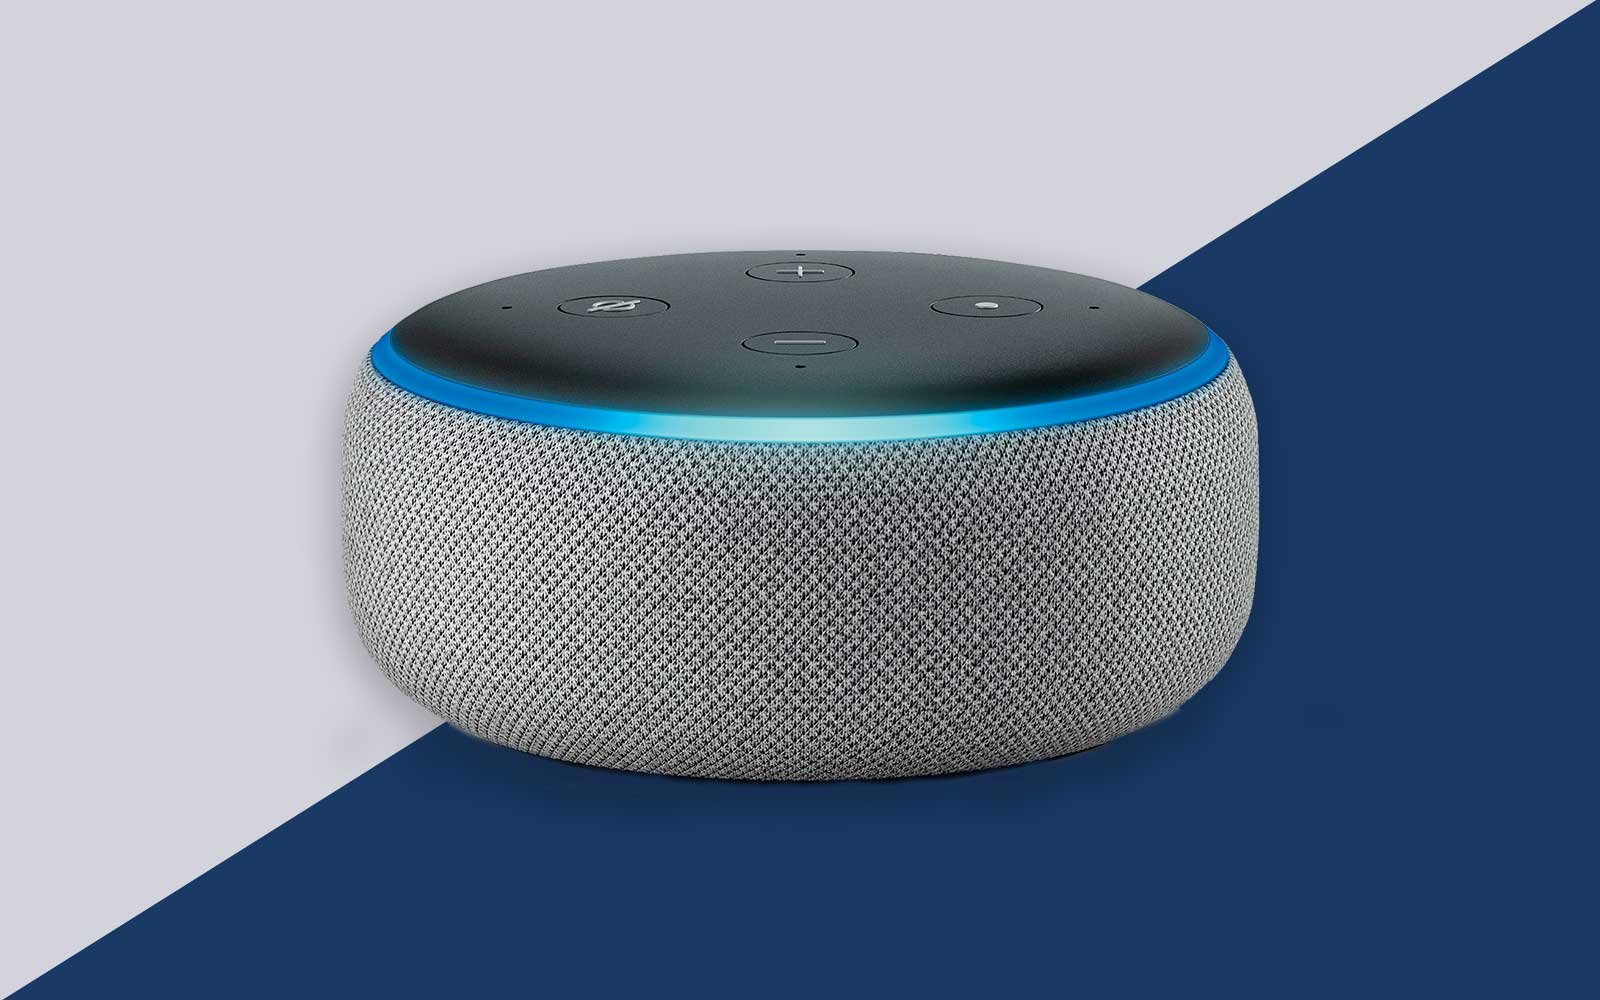 Cyber Monday 2019: Tech deals under $50